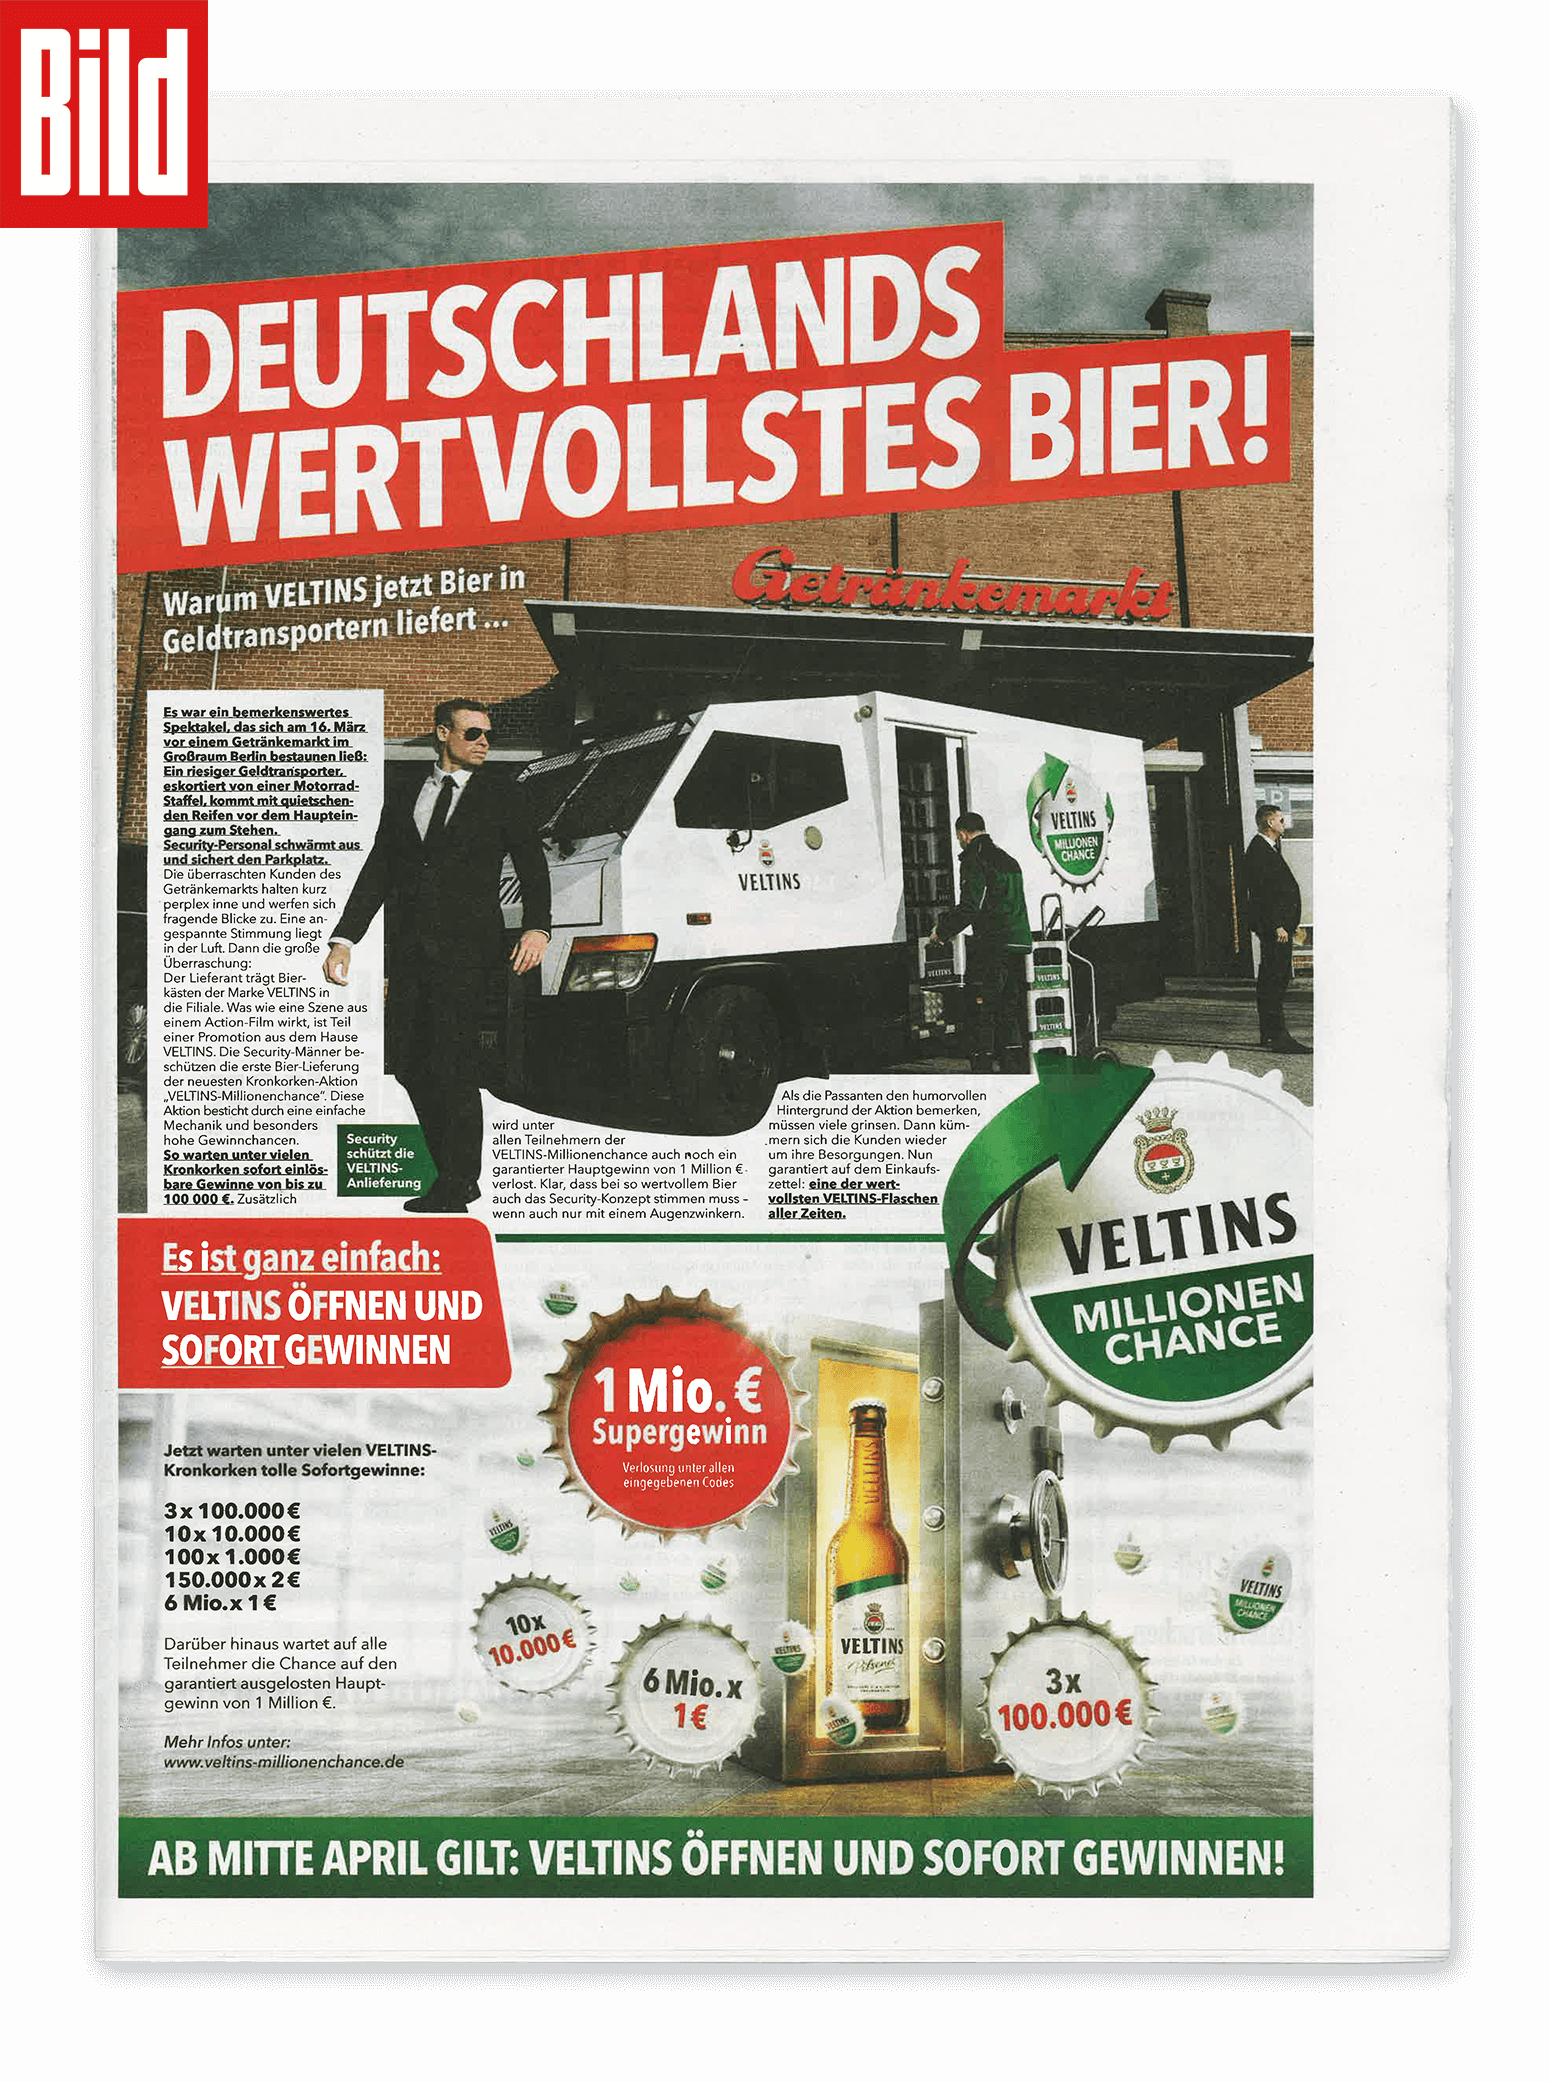 3100x2160px_VELTINS_MioChanceTransporter_Content_05_Part1.png